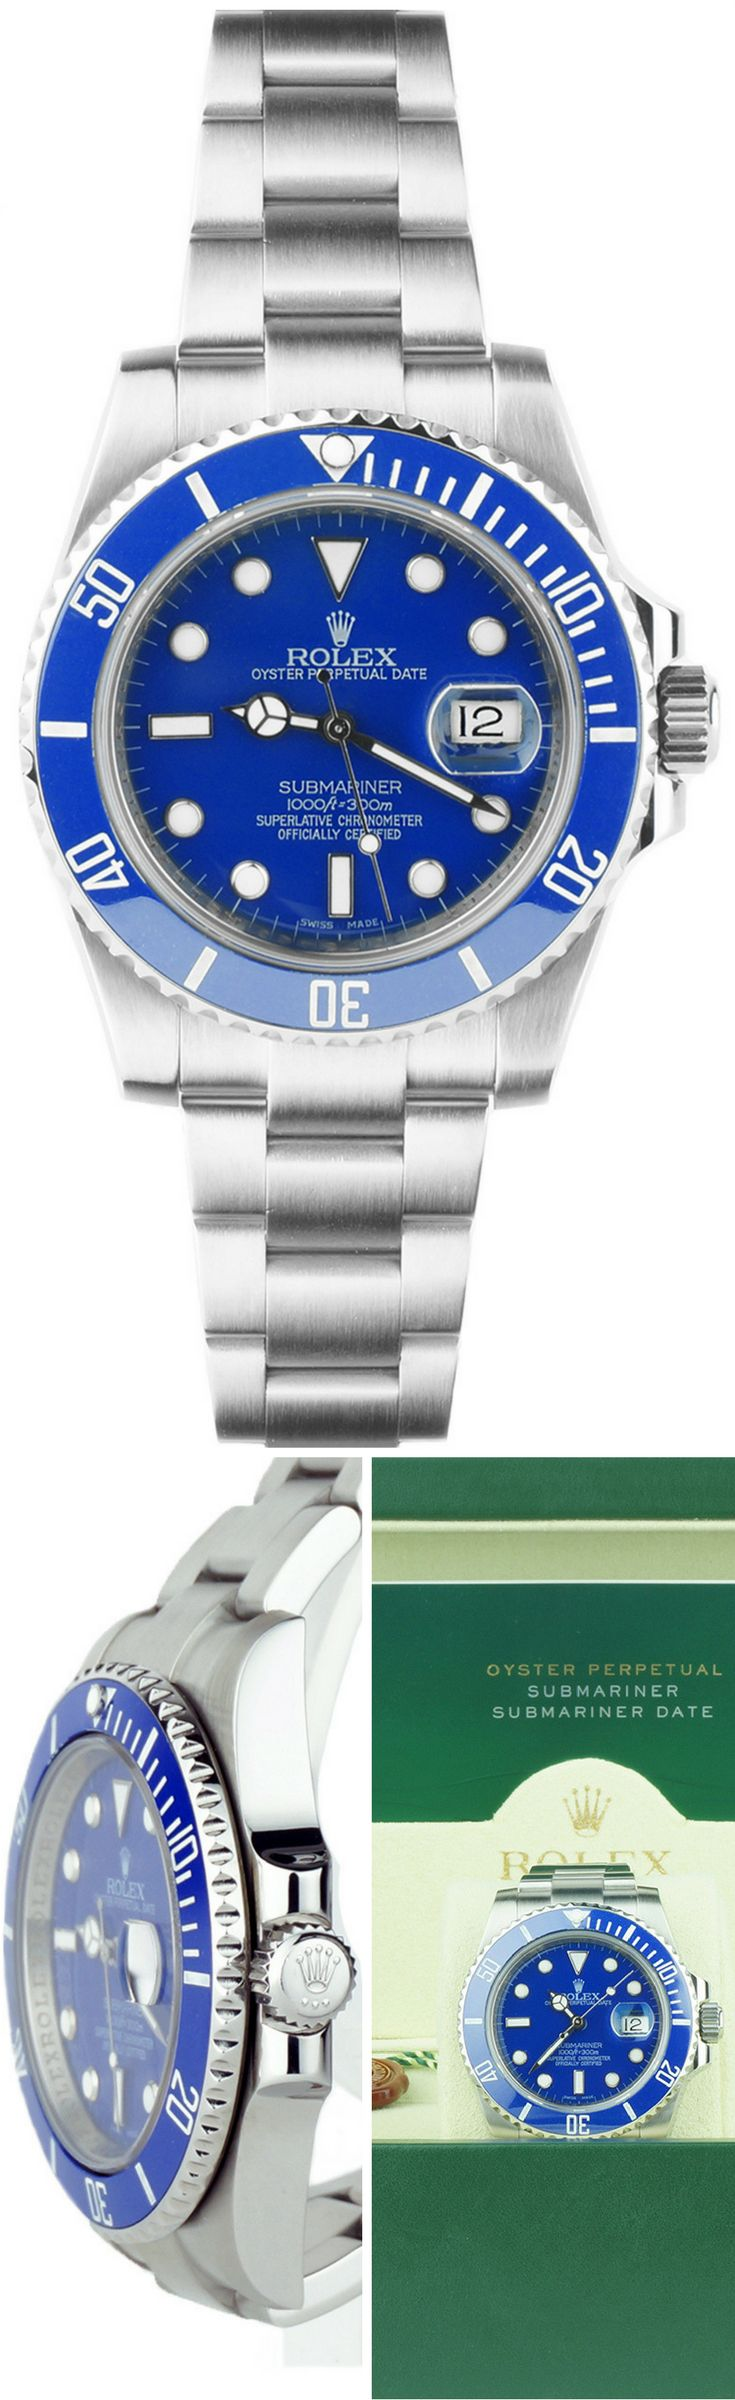 Perfection! Rolex Submariner in Custom Blue Ceramic Bezel, Blue Dial with Stainless Steel for the True Diver Look.